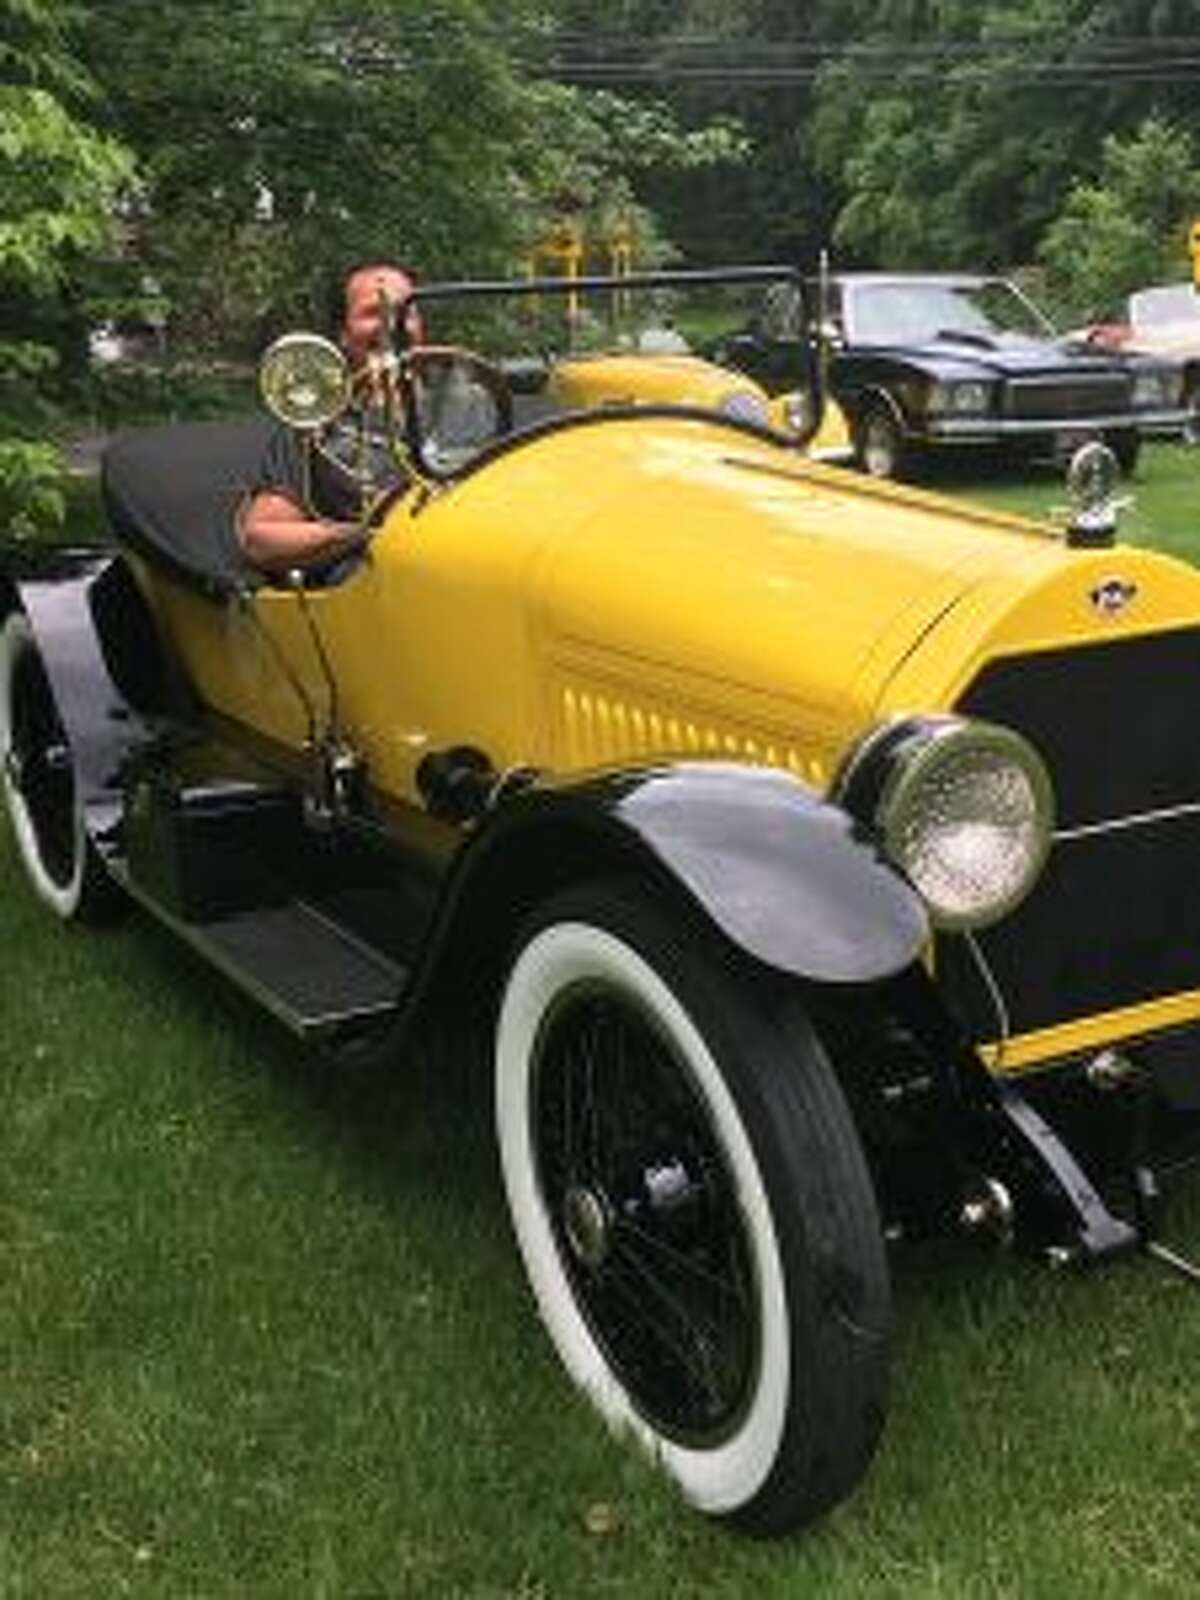 George Dragone sits in the 1920 Stutz Bearcat which won an award at New Canaan Historical Society's Ice Cream Social. - Contributed photo